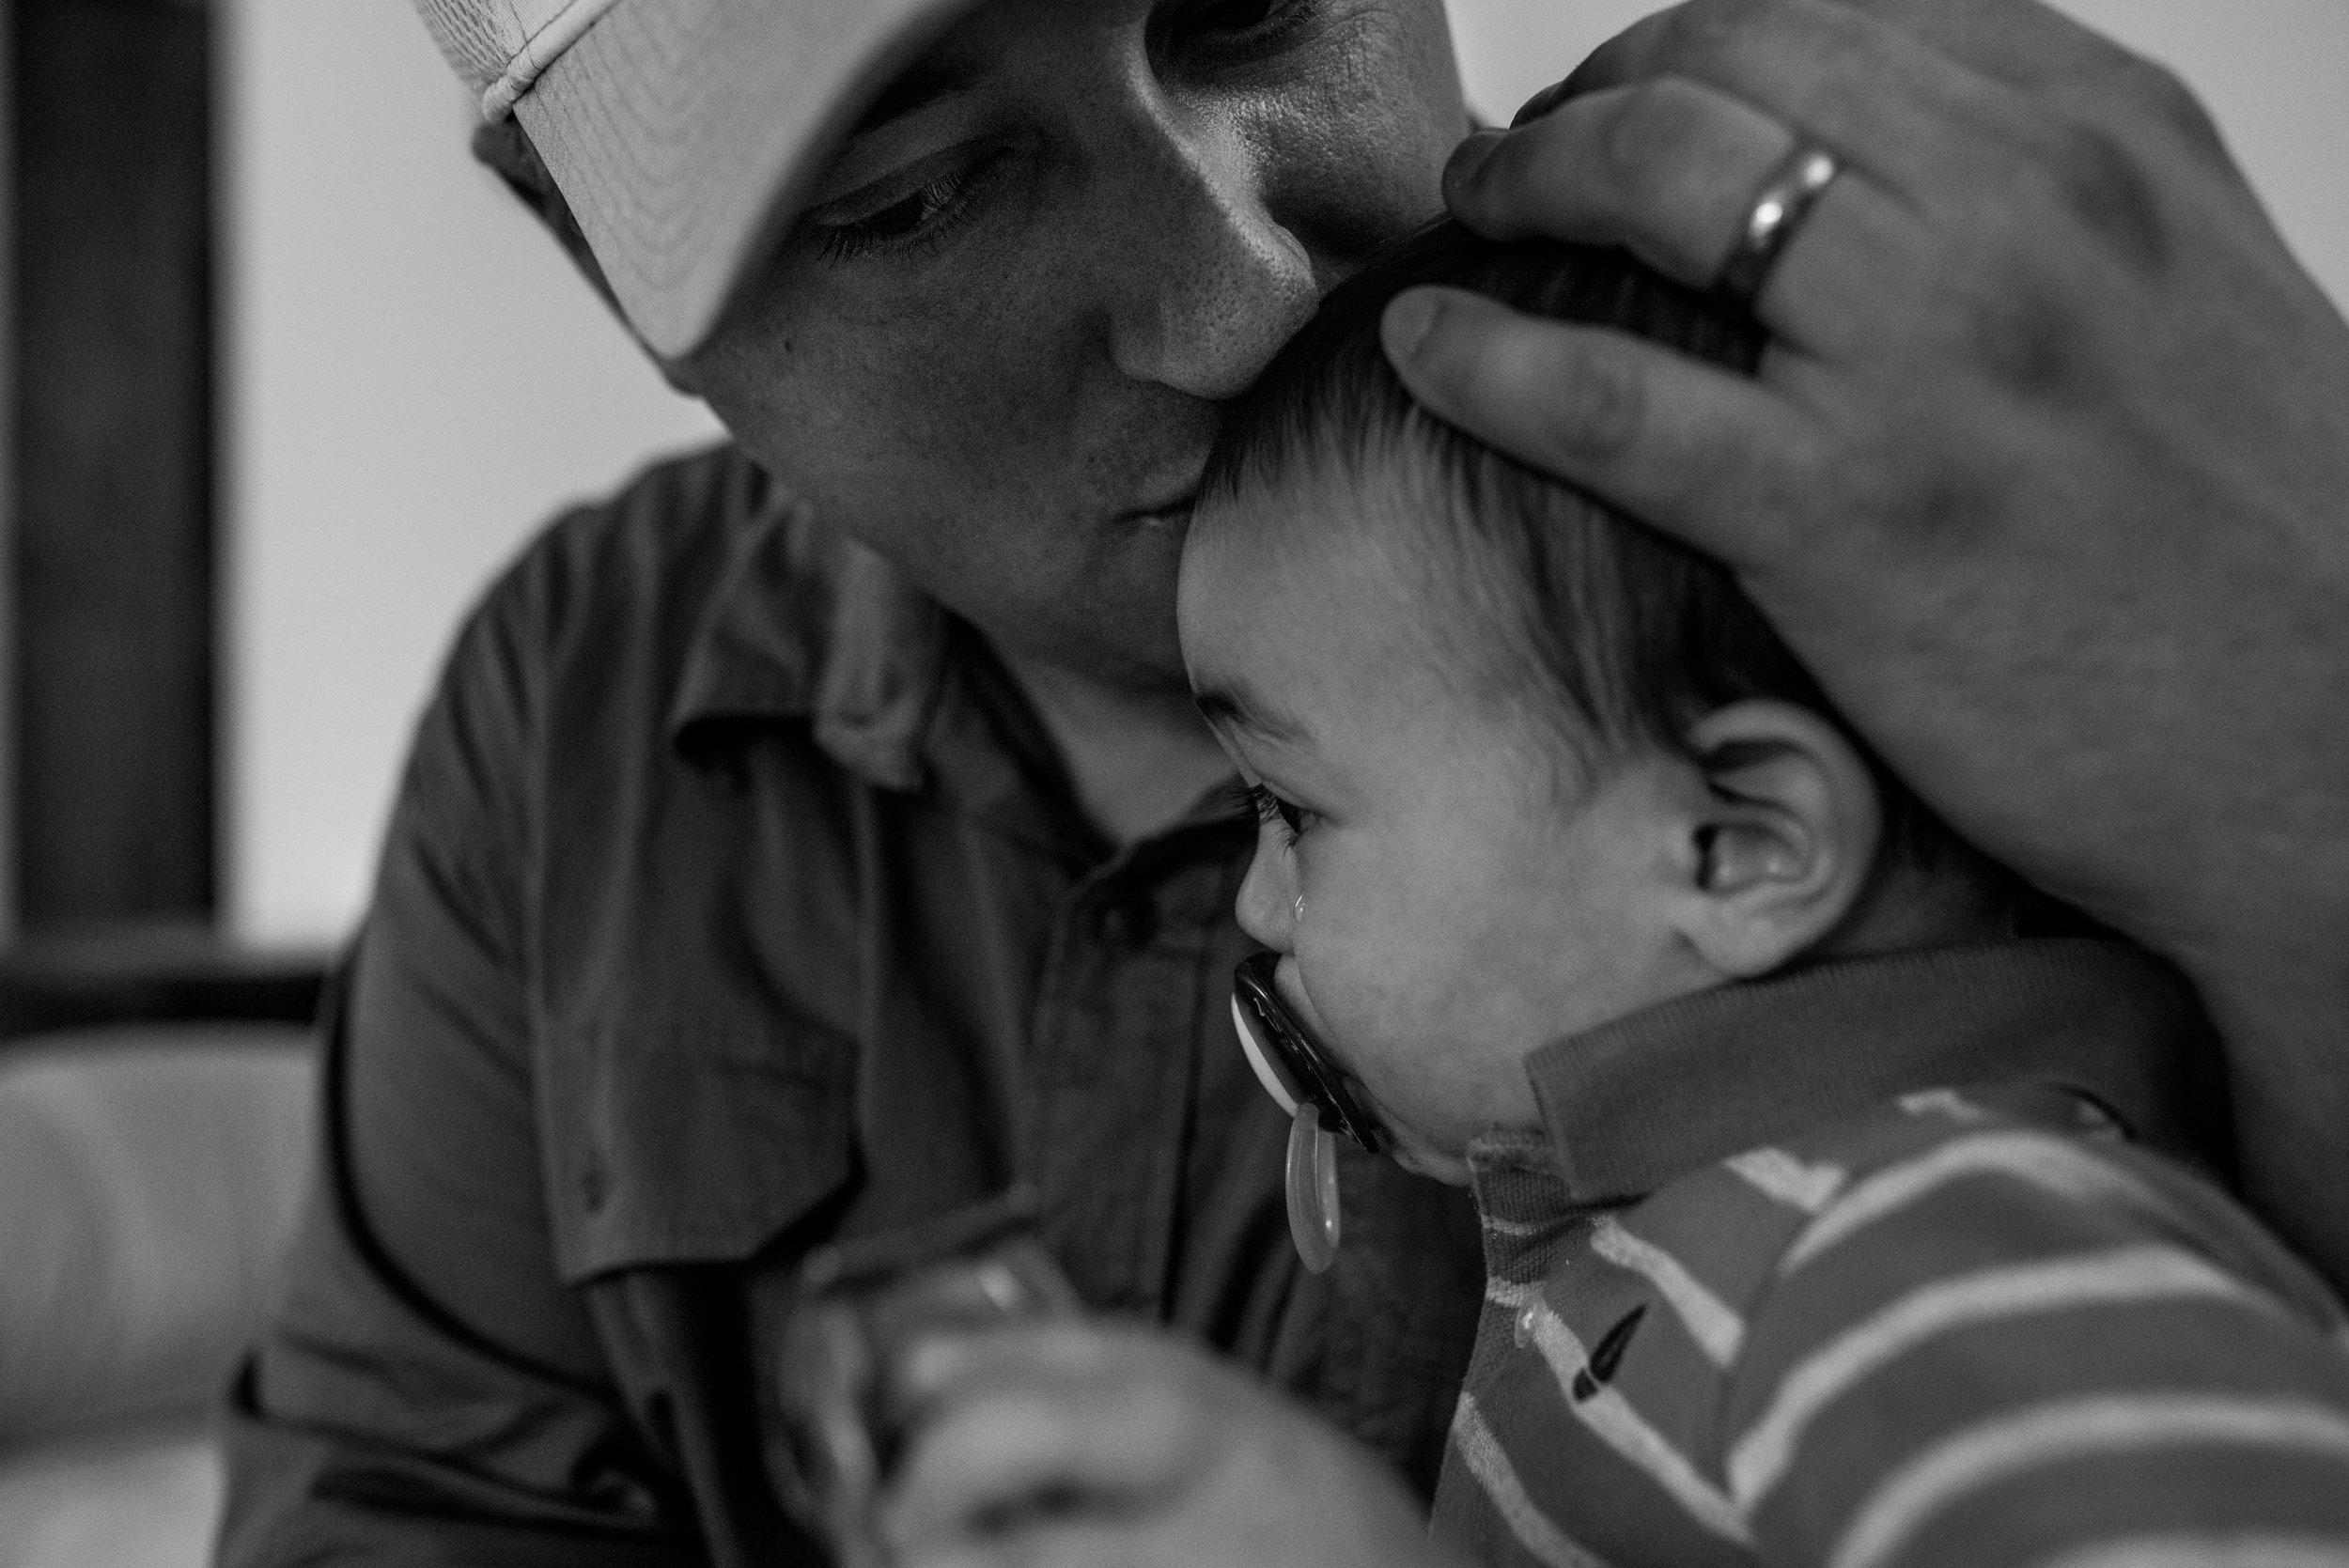 Dad kissing crying toddler son on the forehead during a muskego family photography session